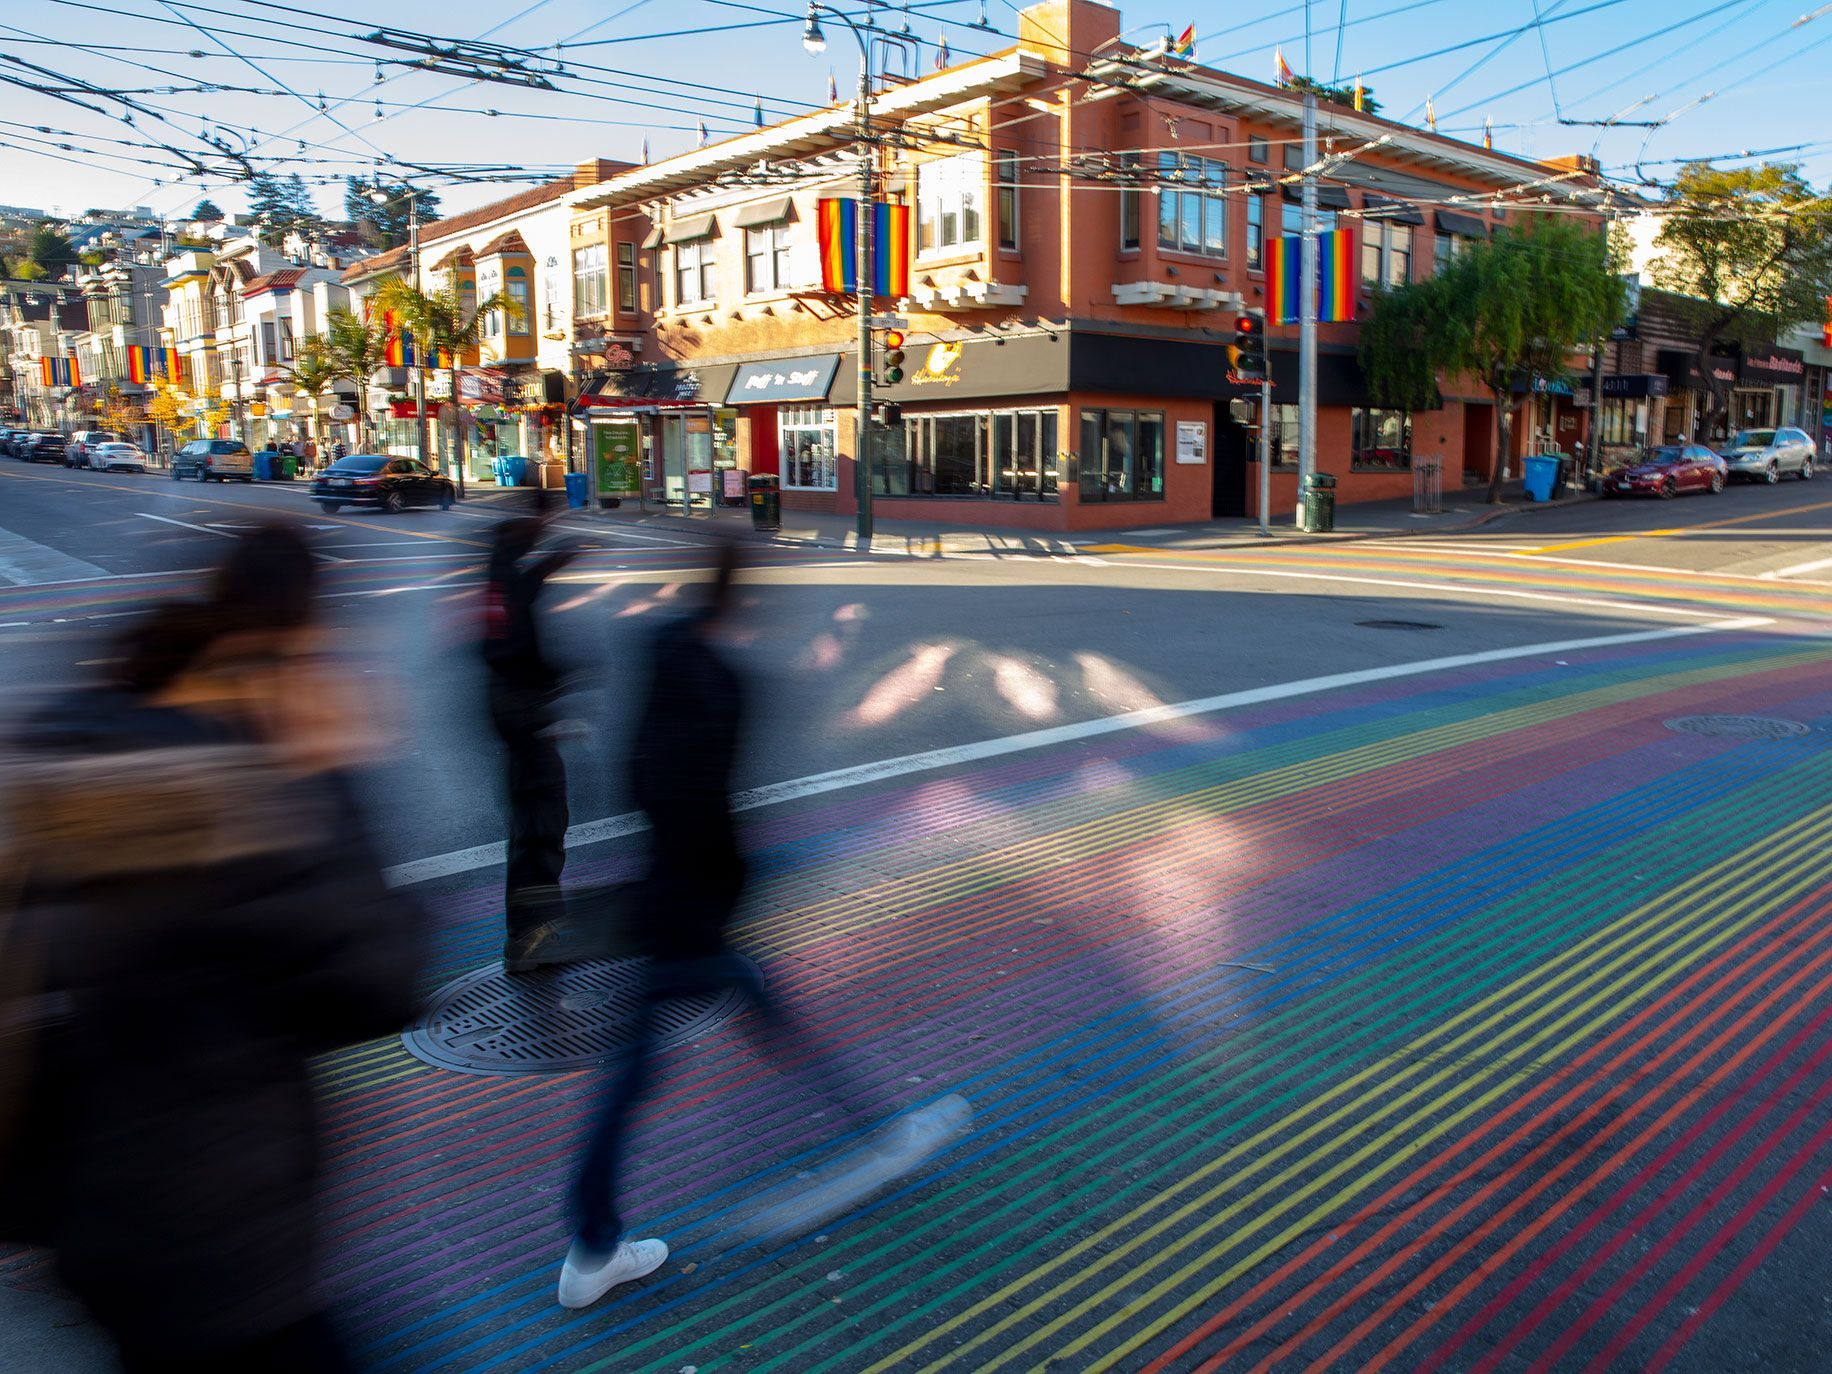 The average rent for a two-bedroom apartment in the Castro is about $5,000 a month, and the median sale price for a home there is north of $1 million. When longtime residents with rent control get evicted, they can't afford to stay in the neighborhood.